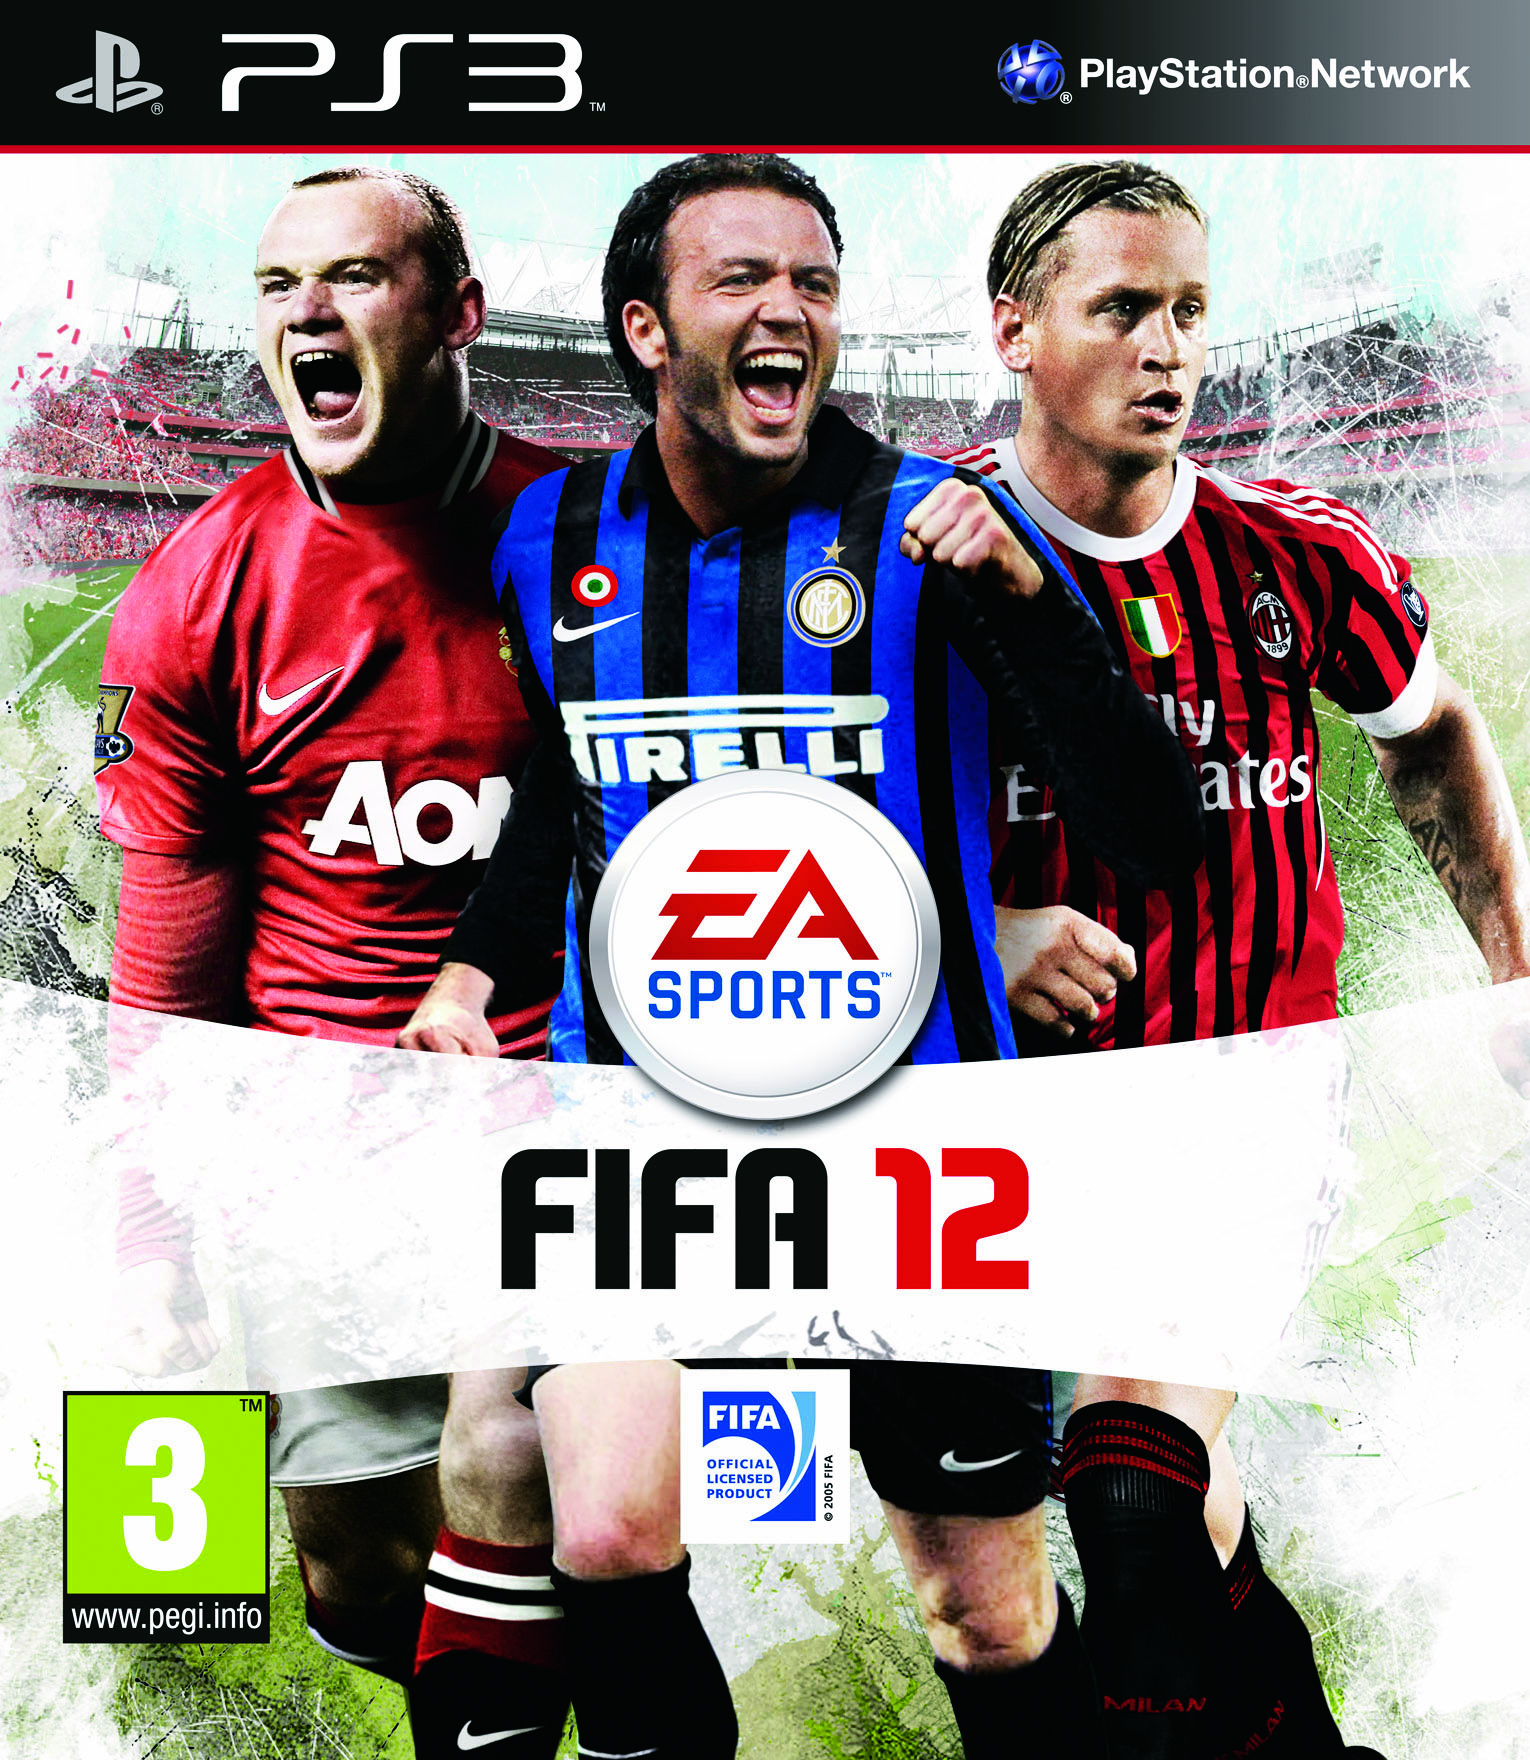 Download Fifa 12 Game Setup